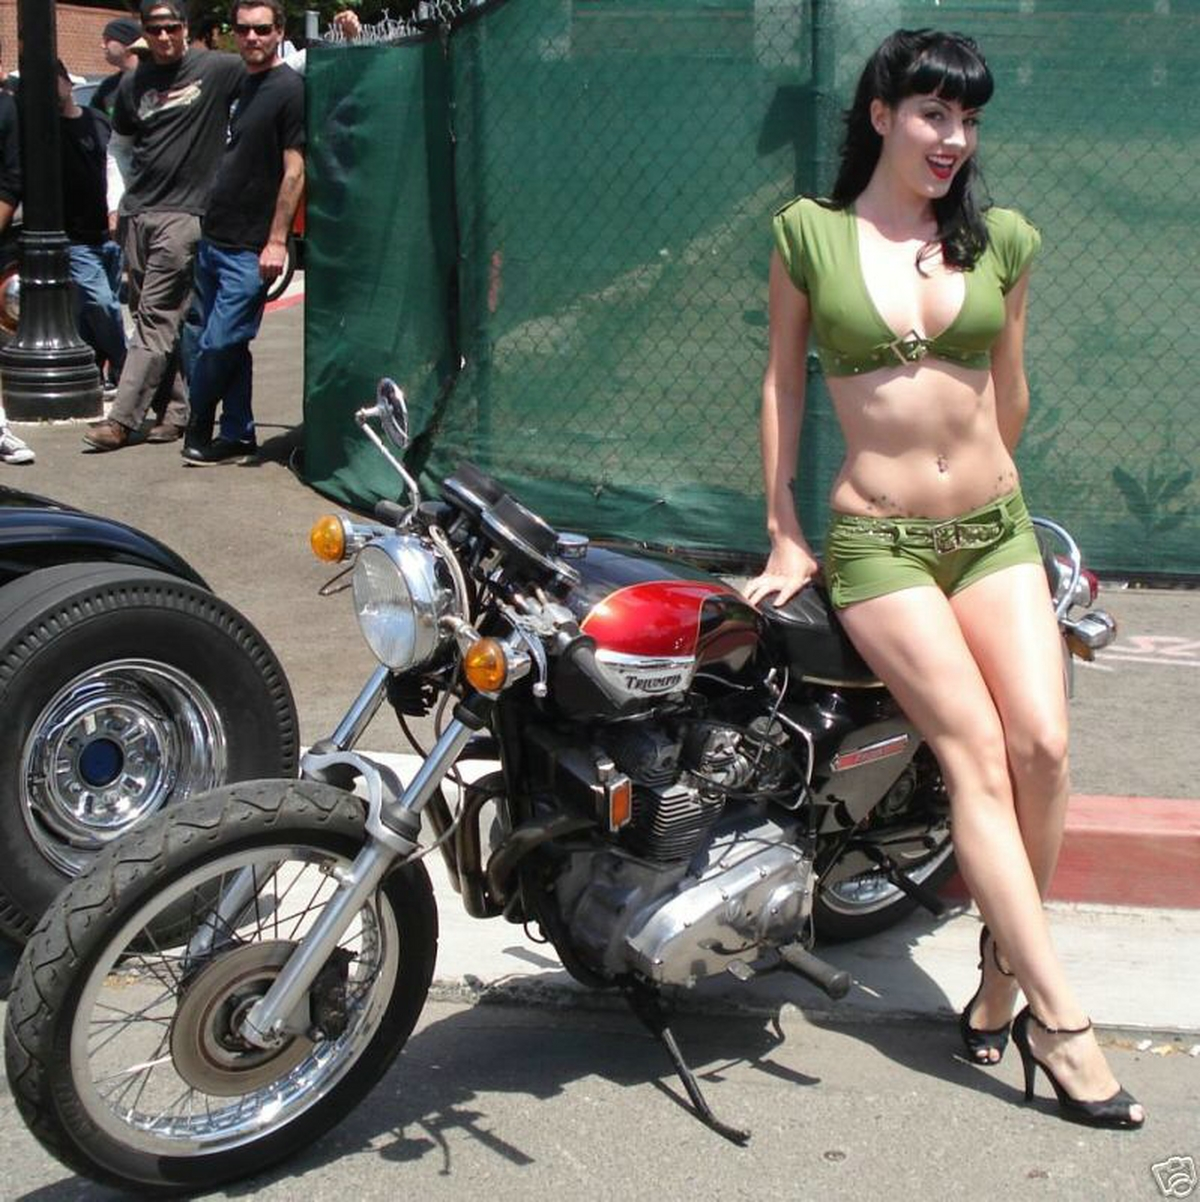 Girls And Bikes Thread Or Sexy Girls And Bikes Thread